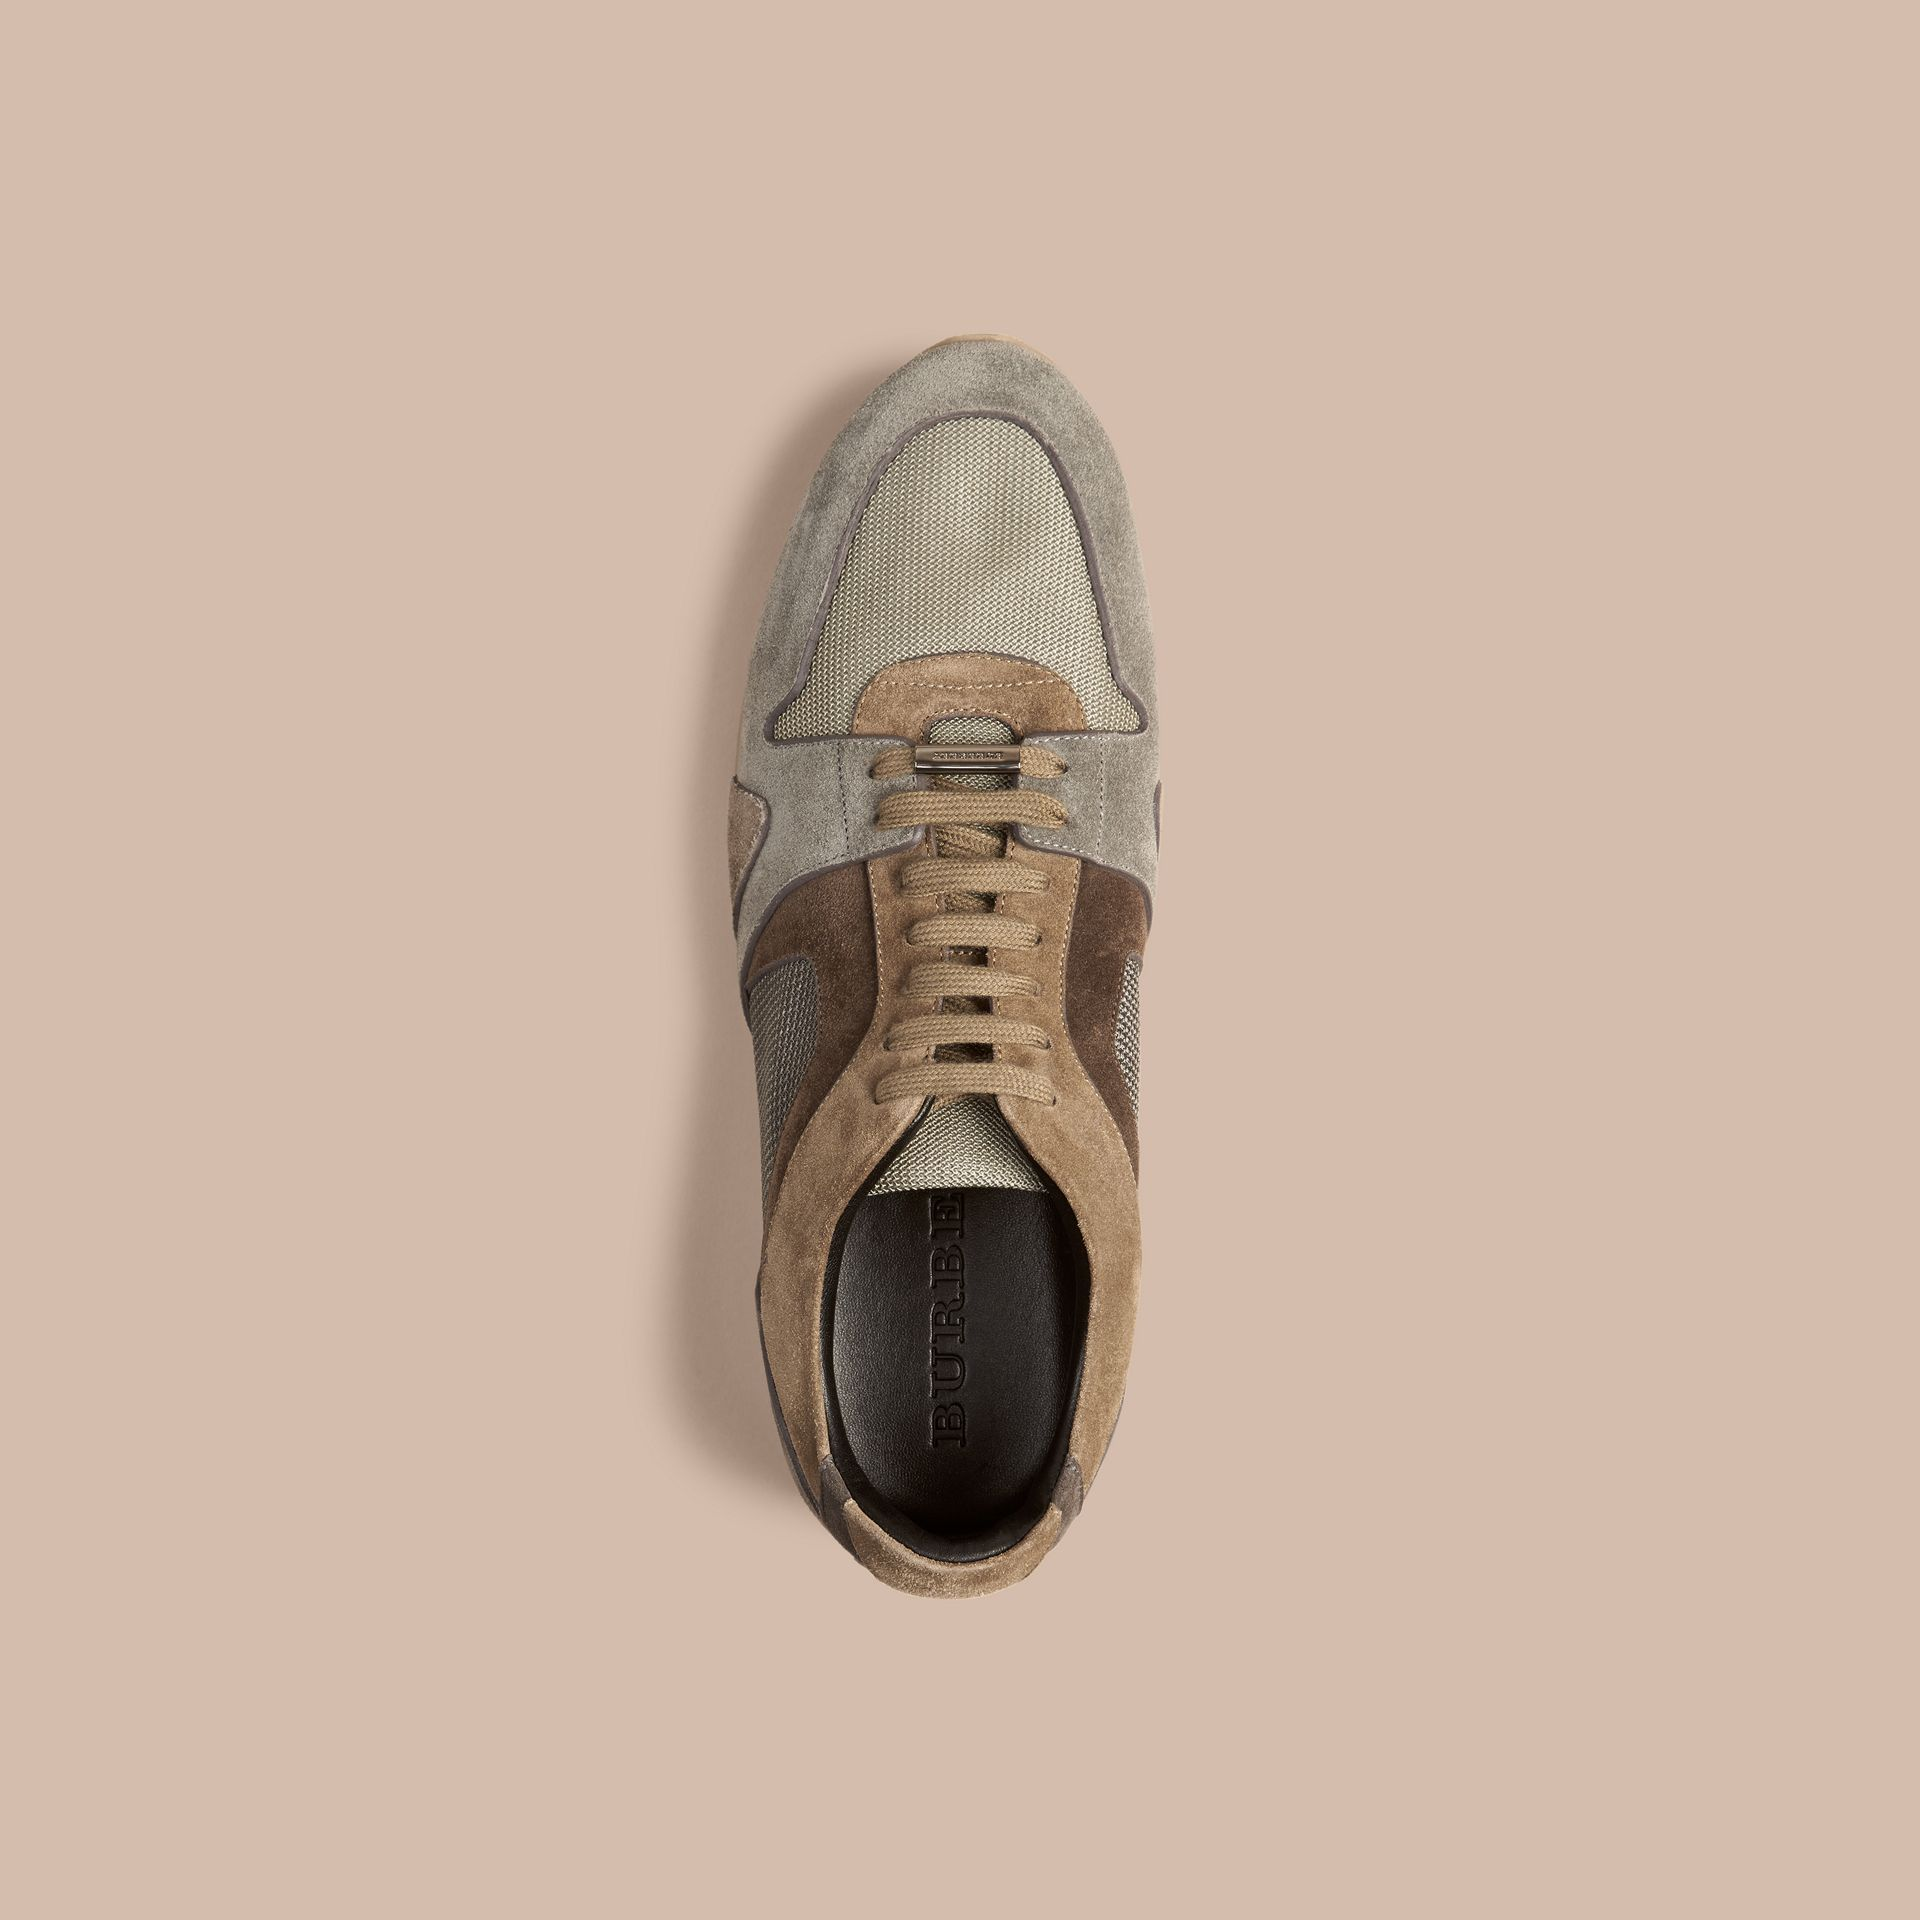 Greystone The Field Sneaker in Colour Block Suede and Mesh Greystone - gallery image 3